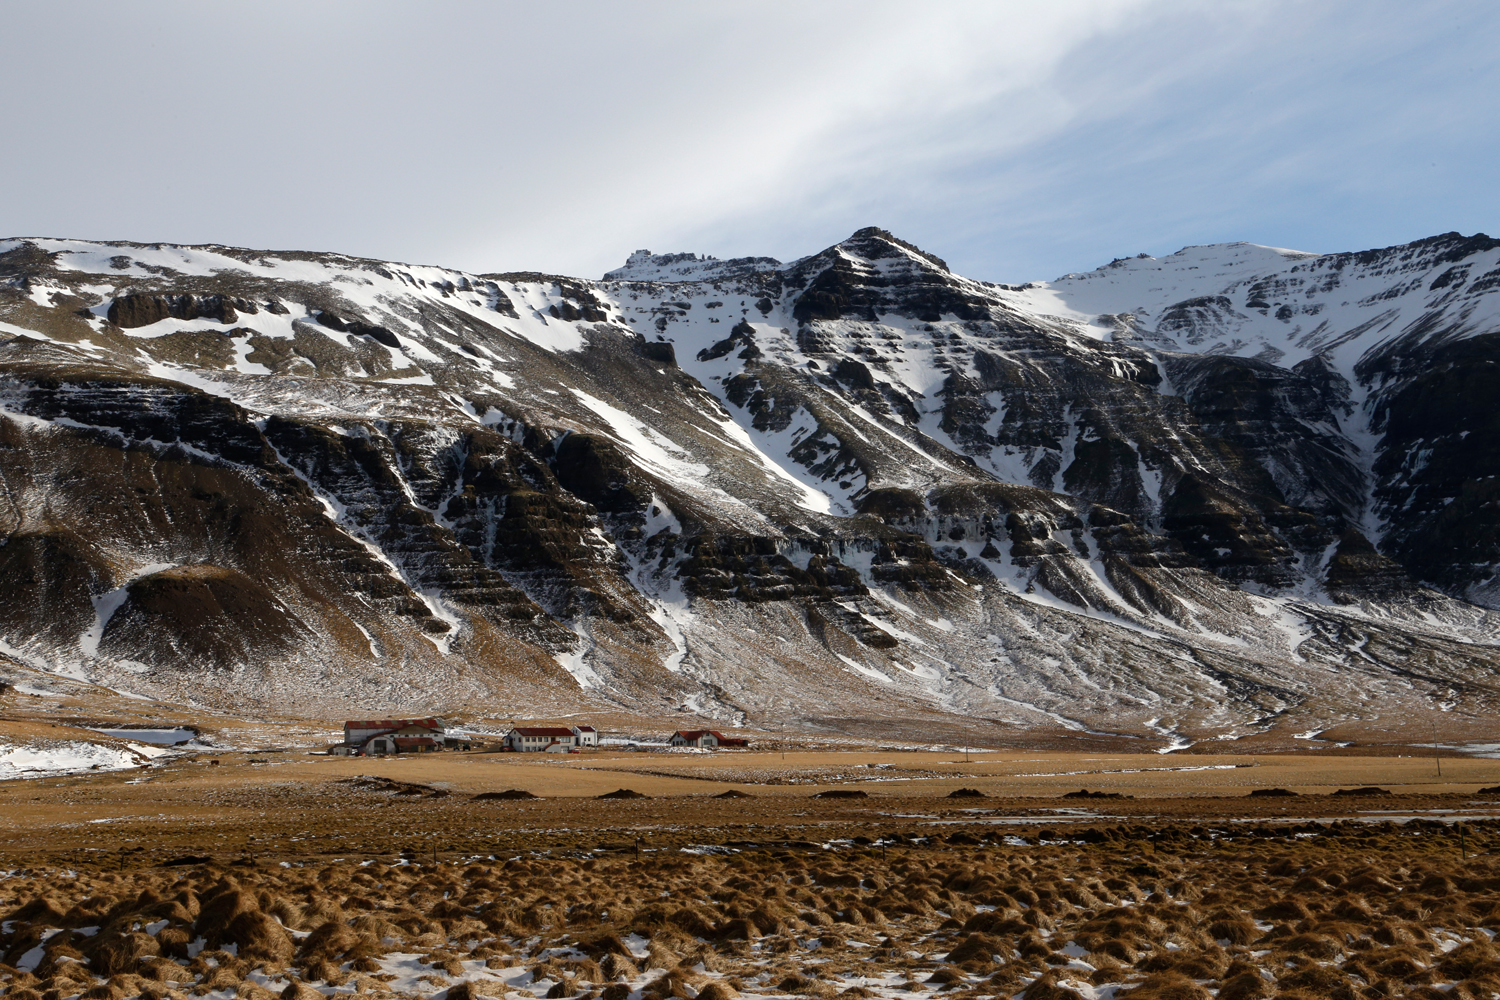 A farm at the bottom of a very steep mountain chain, sitting in a field of dry grass with some occasional spots of snow.